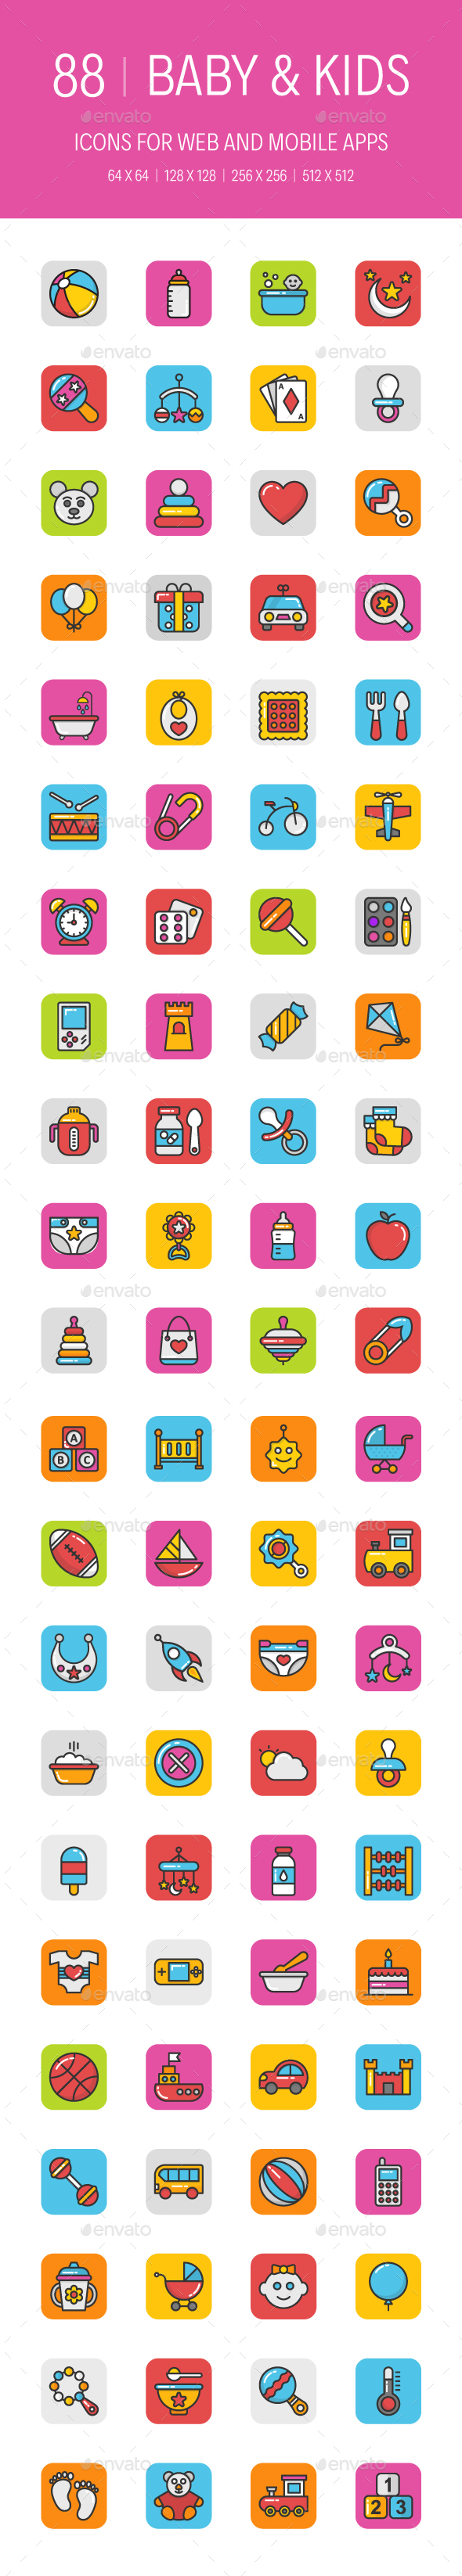 GraphicRiver 88 Baby and Kids Icons 20947773